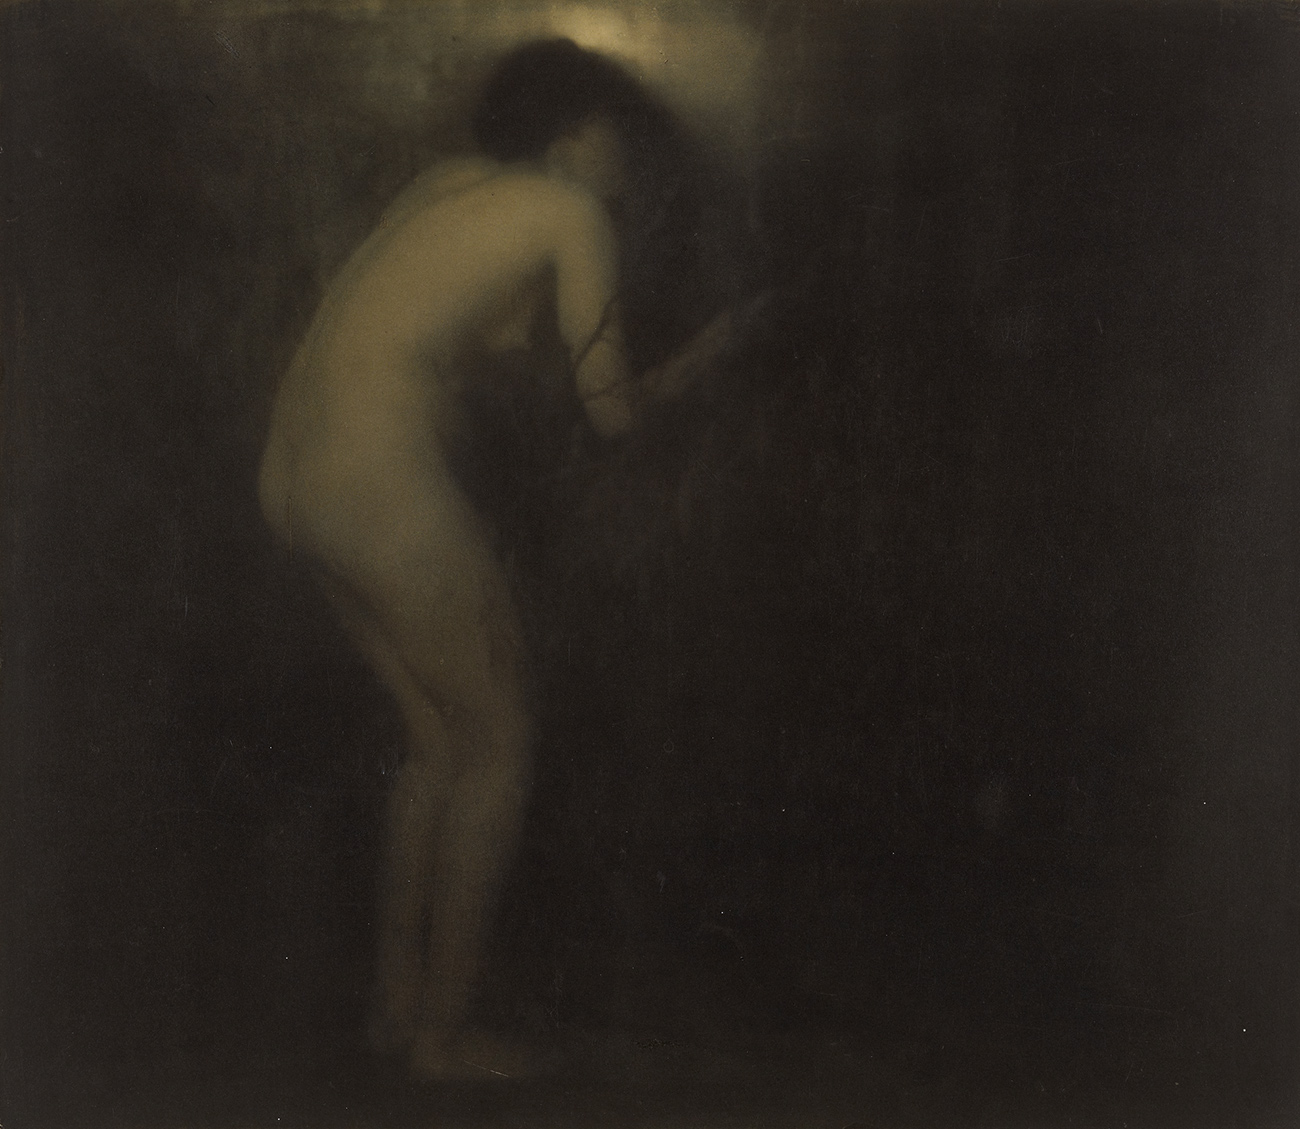 Nude woman crouches by a door or window